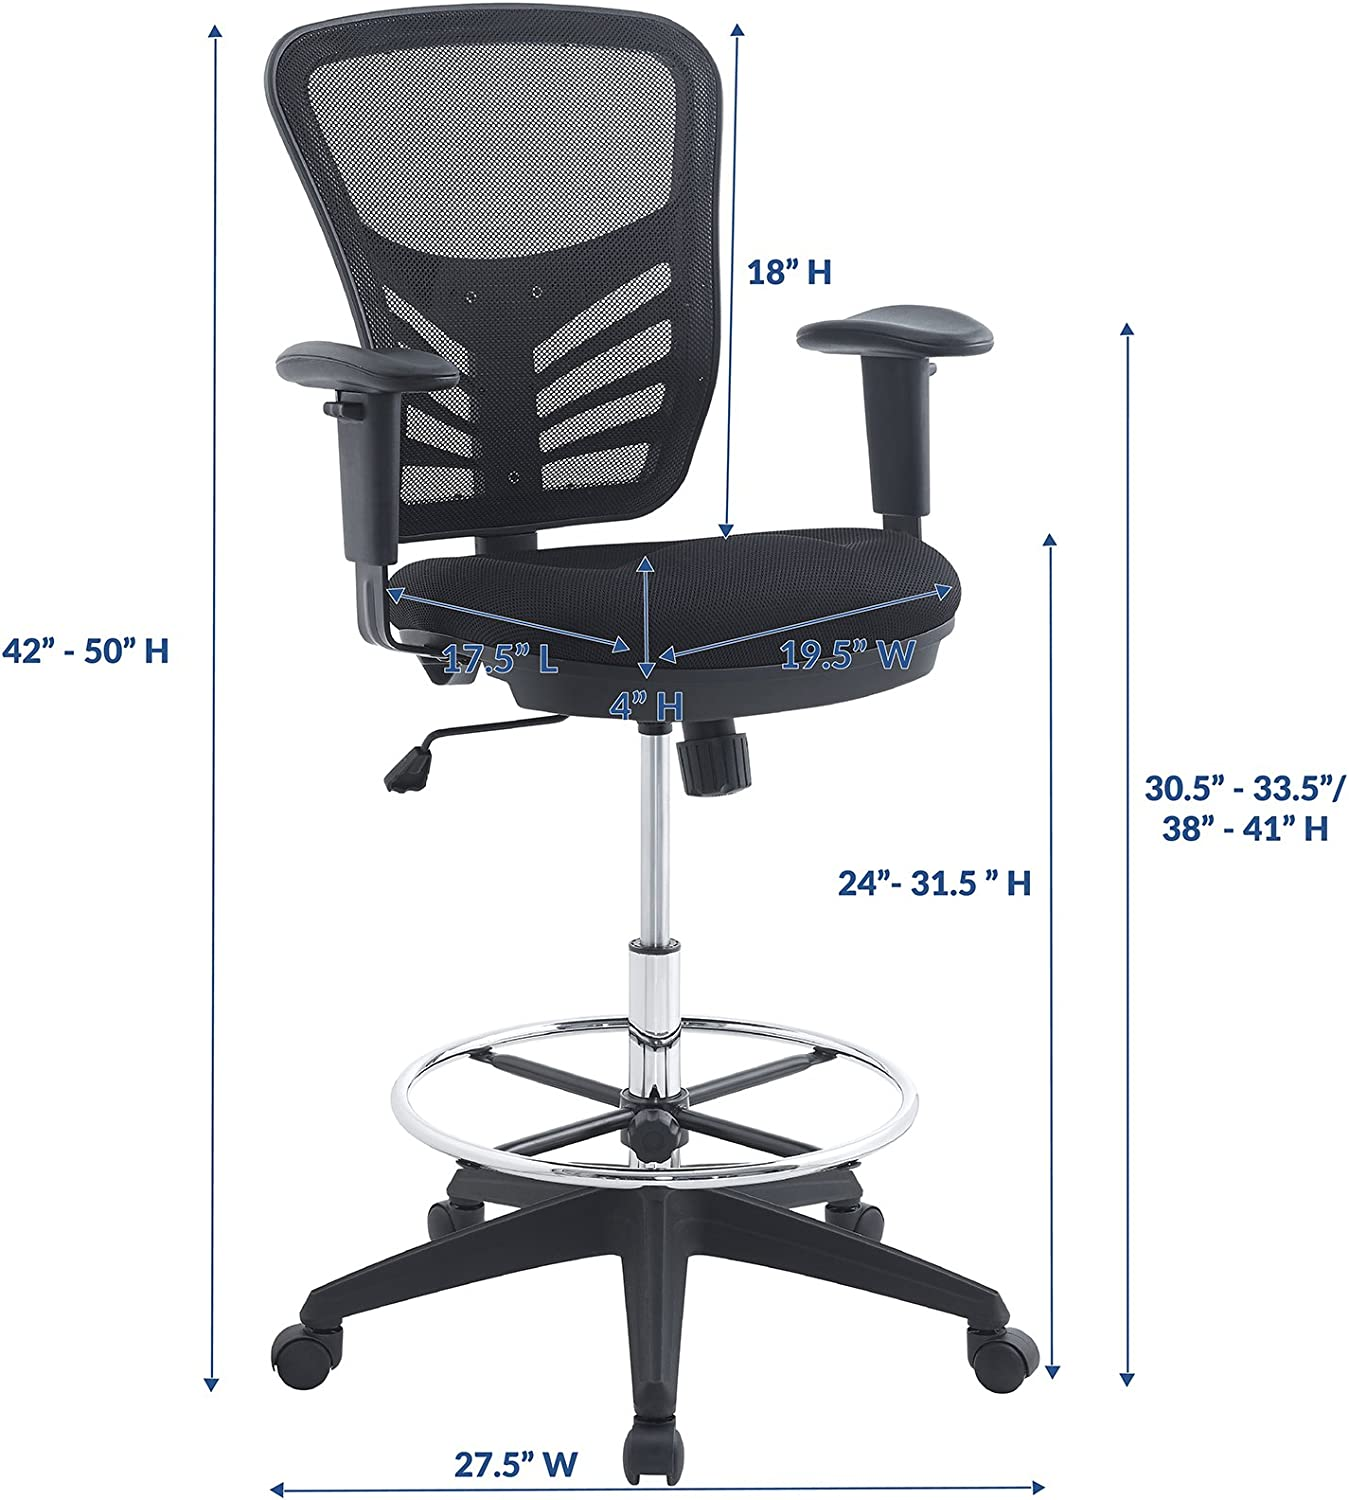 Modway Articulate Drafting Chair - Reception Desk Chair - Drafting Table  Chair in Black